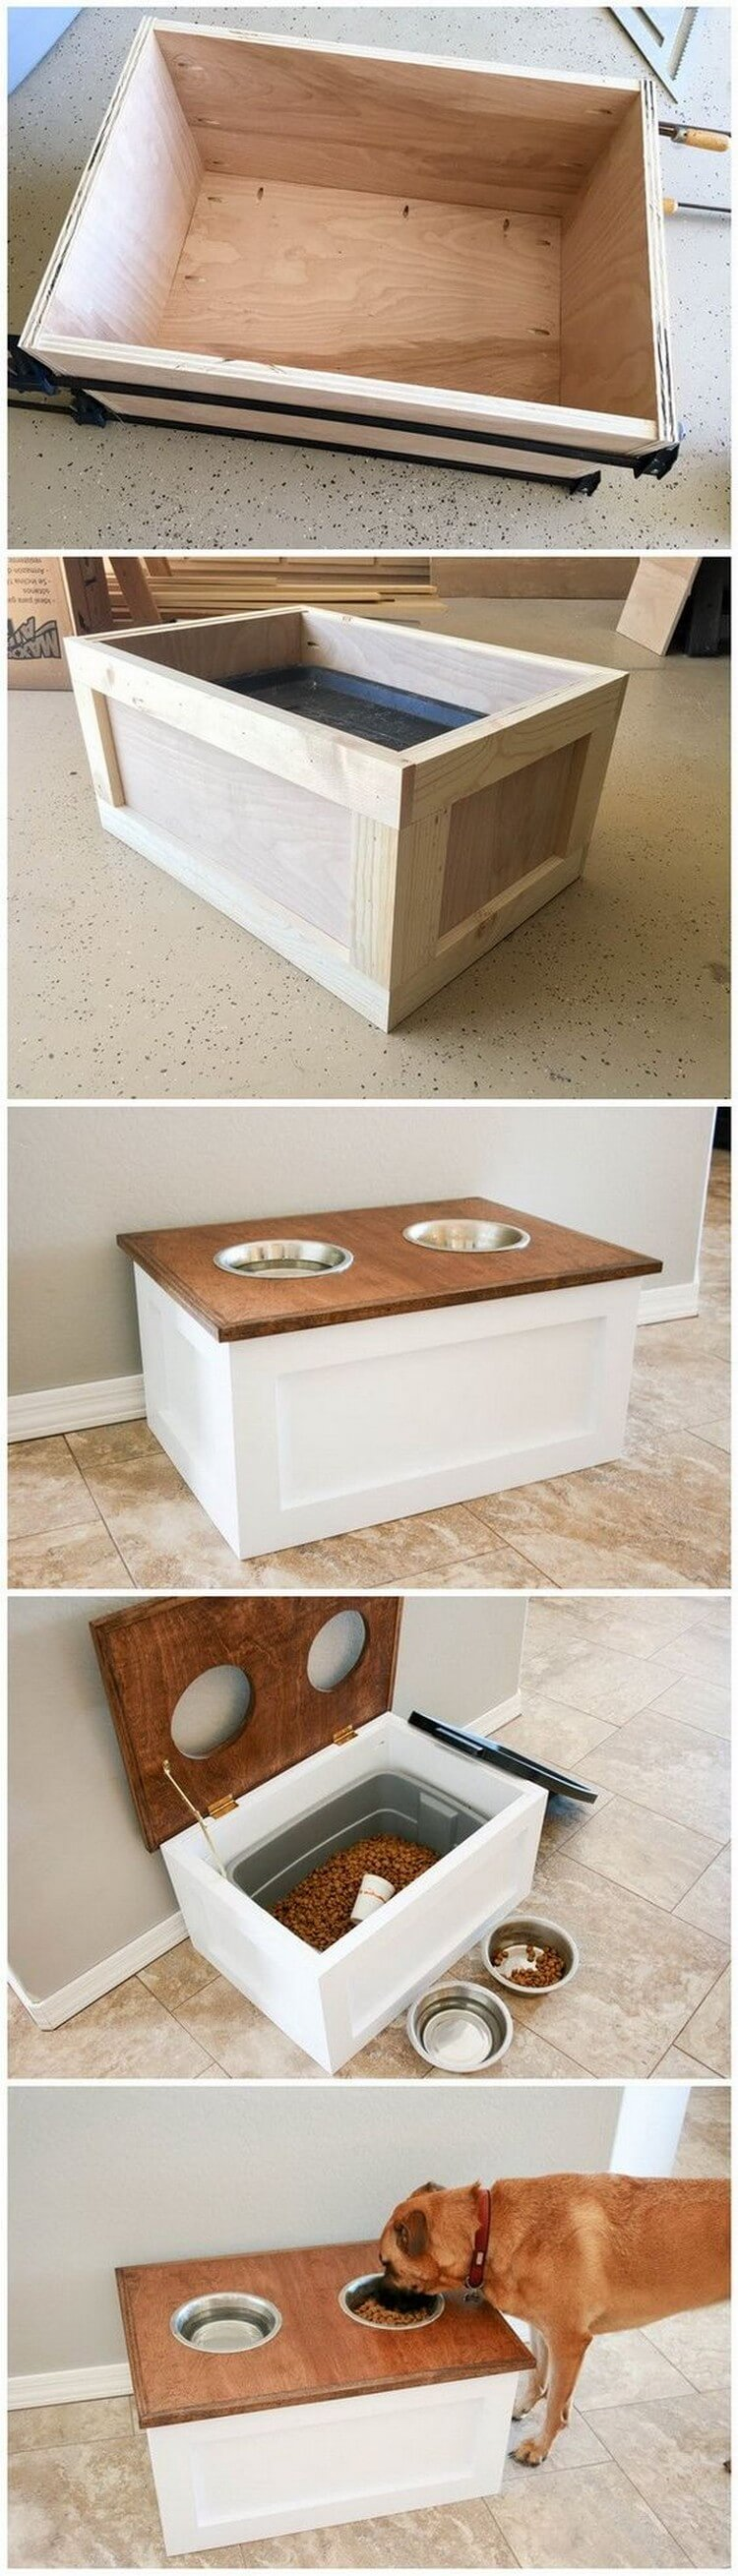 DIY Step by Step Pallet Dog Feeder